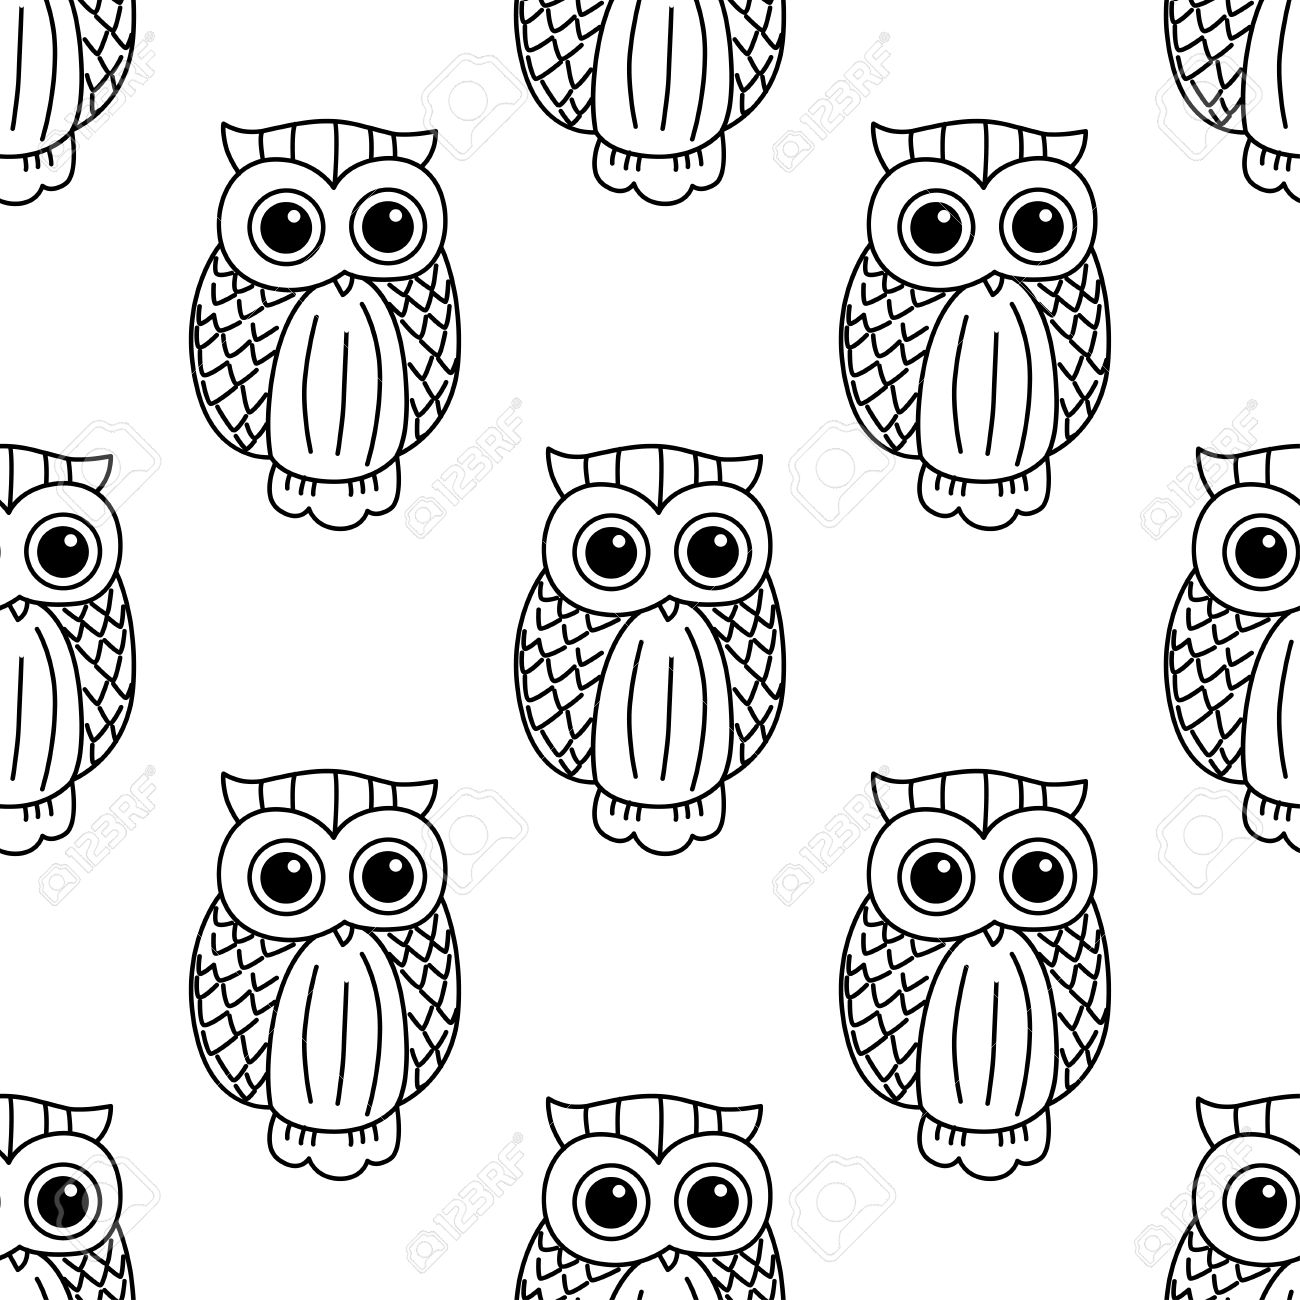 photo stock vector vintage seamless pattern with cute black owls in outline sketch style on white background for textil